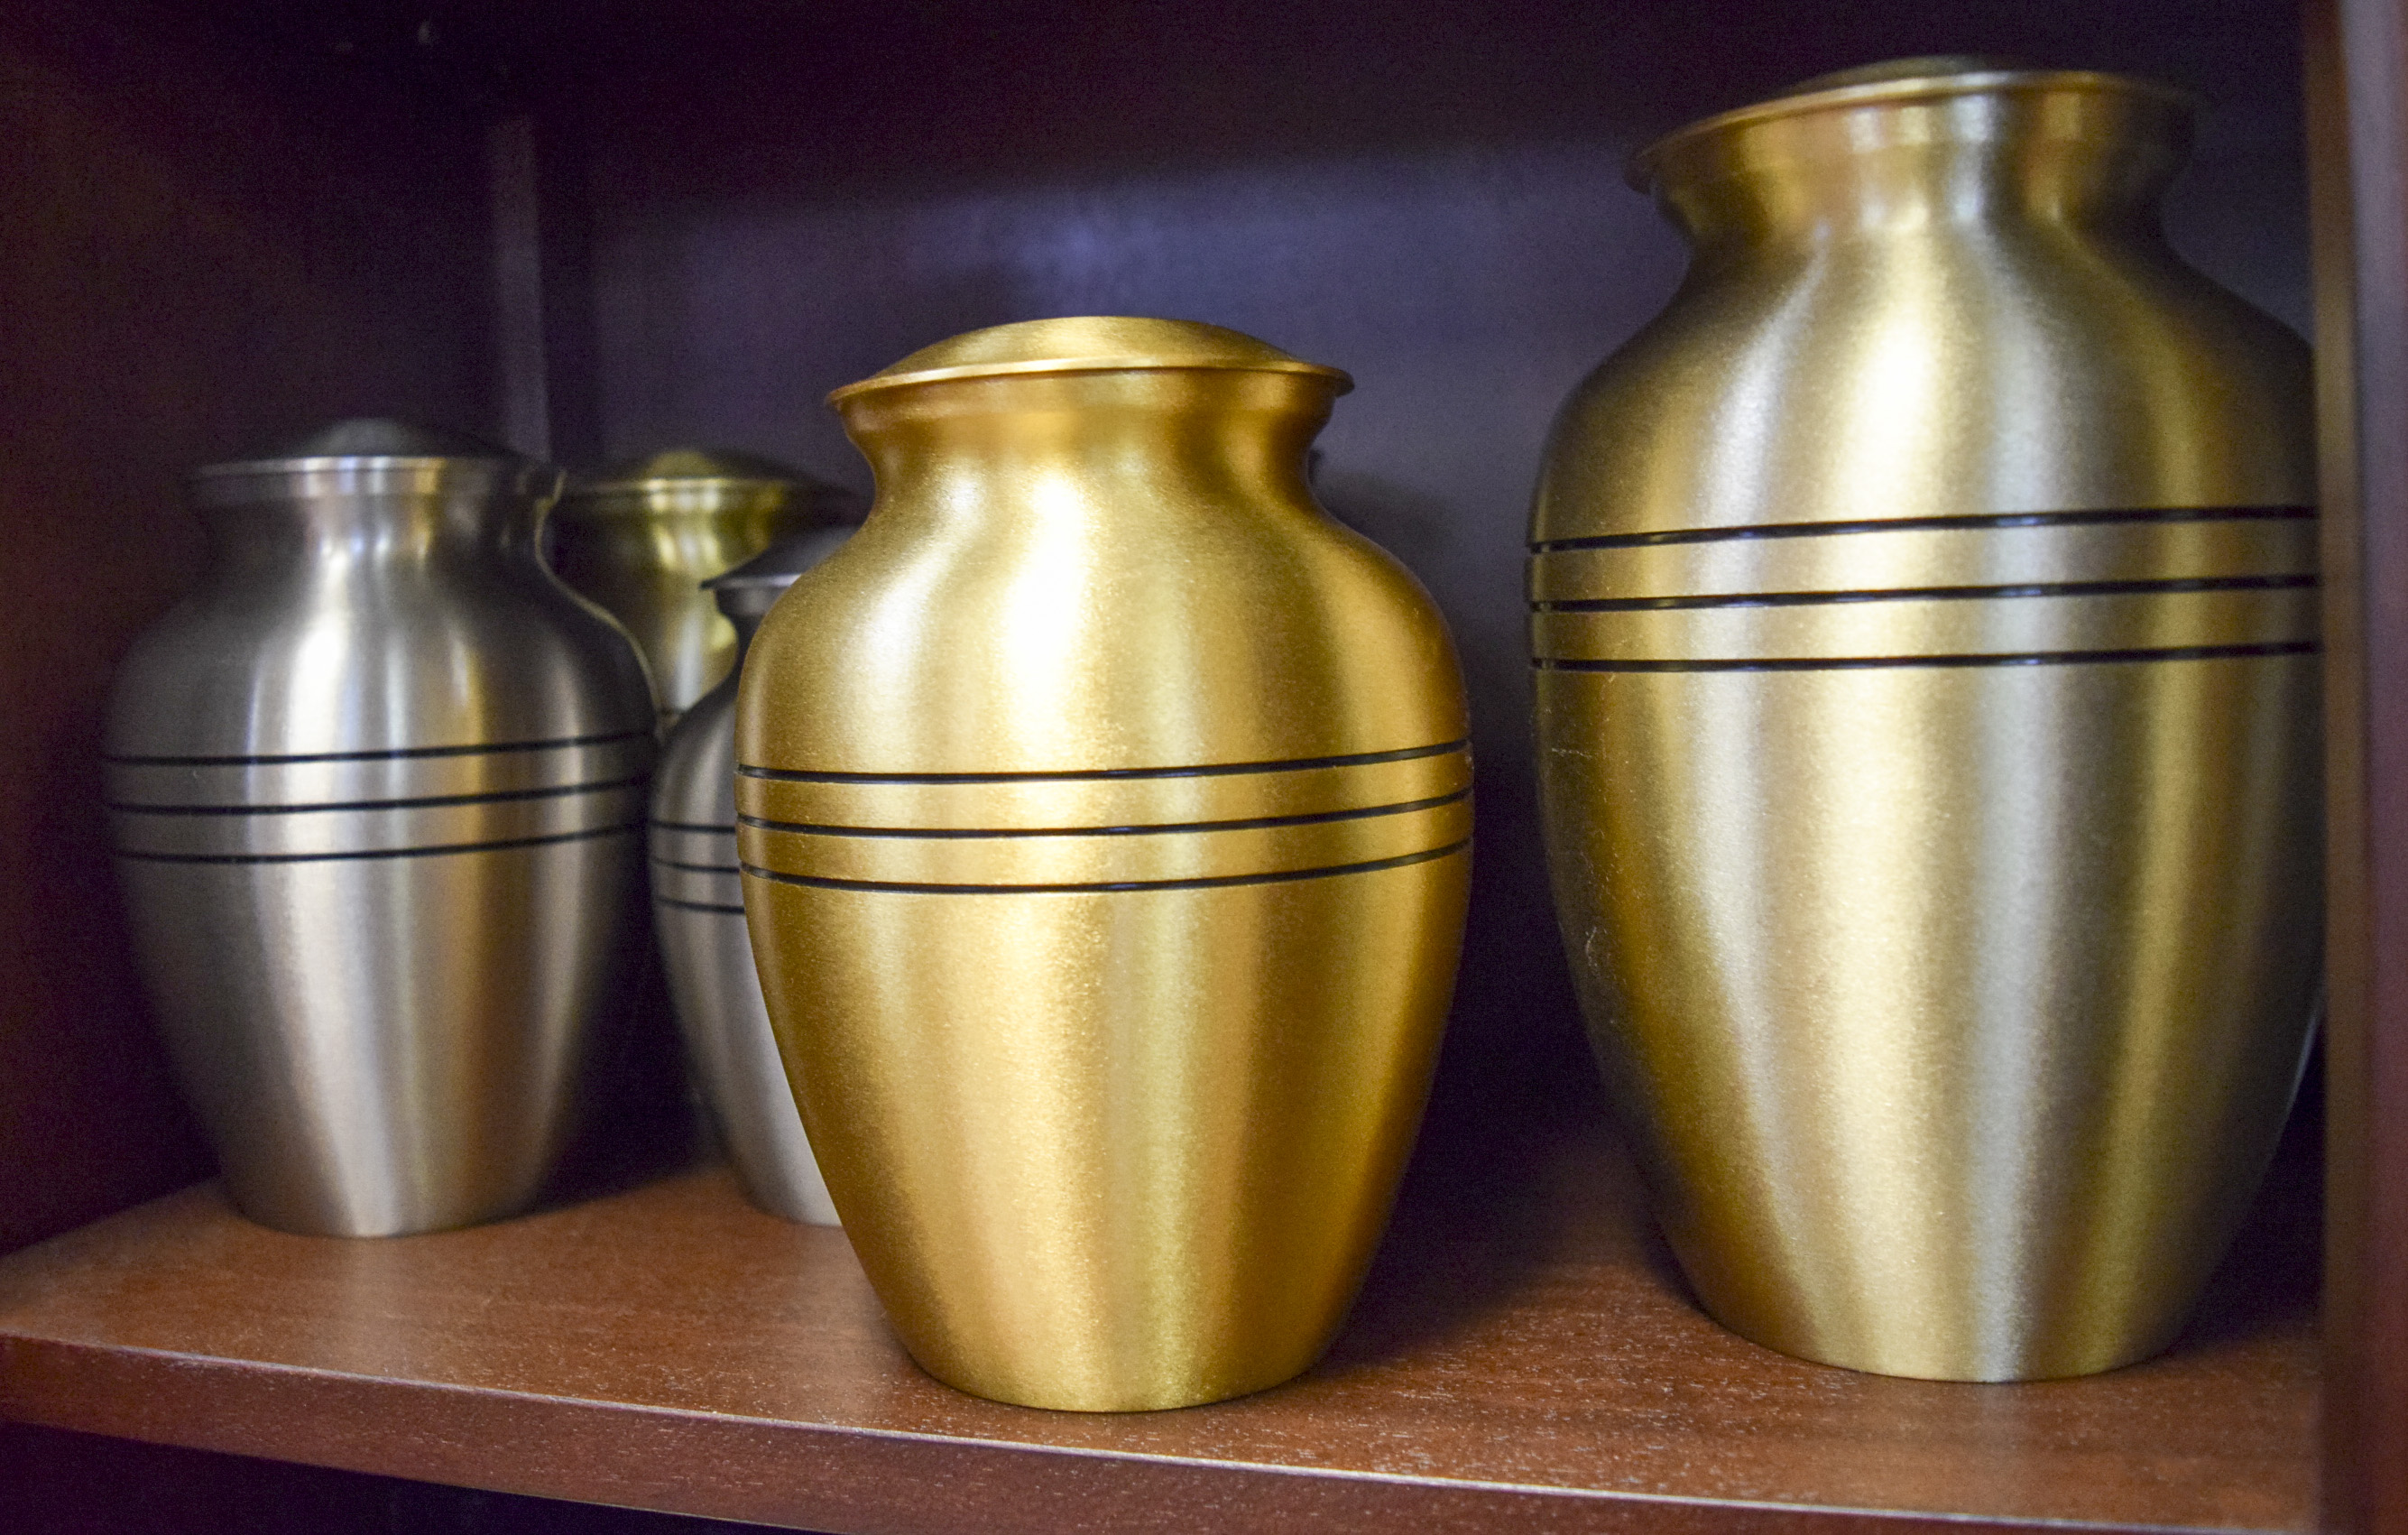 Catholic Church issues new guidelines for cremation. Here's what you need to know